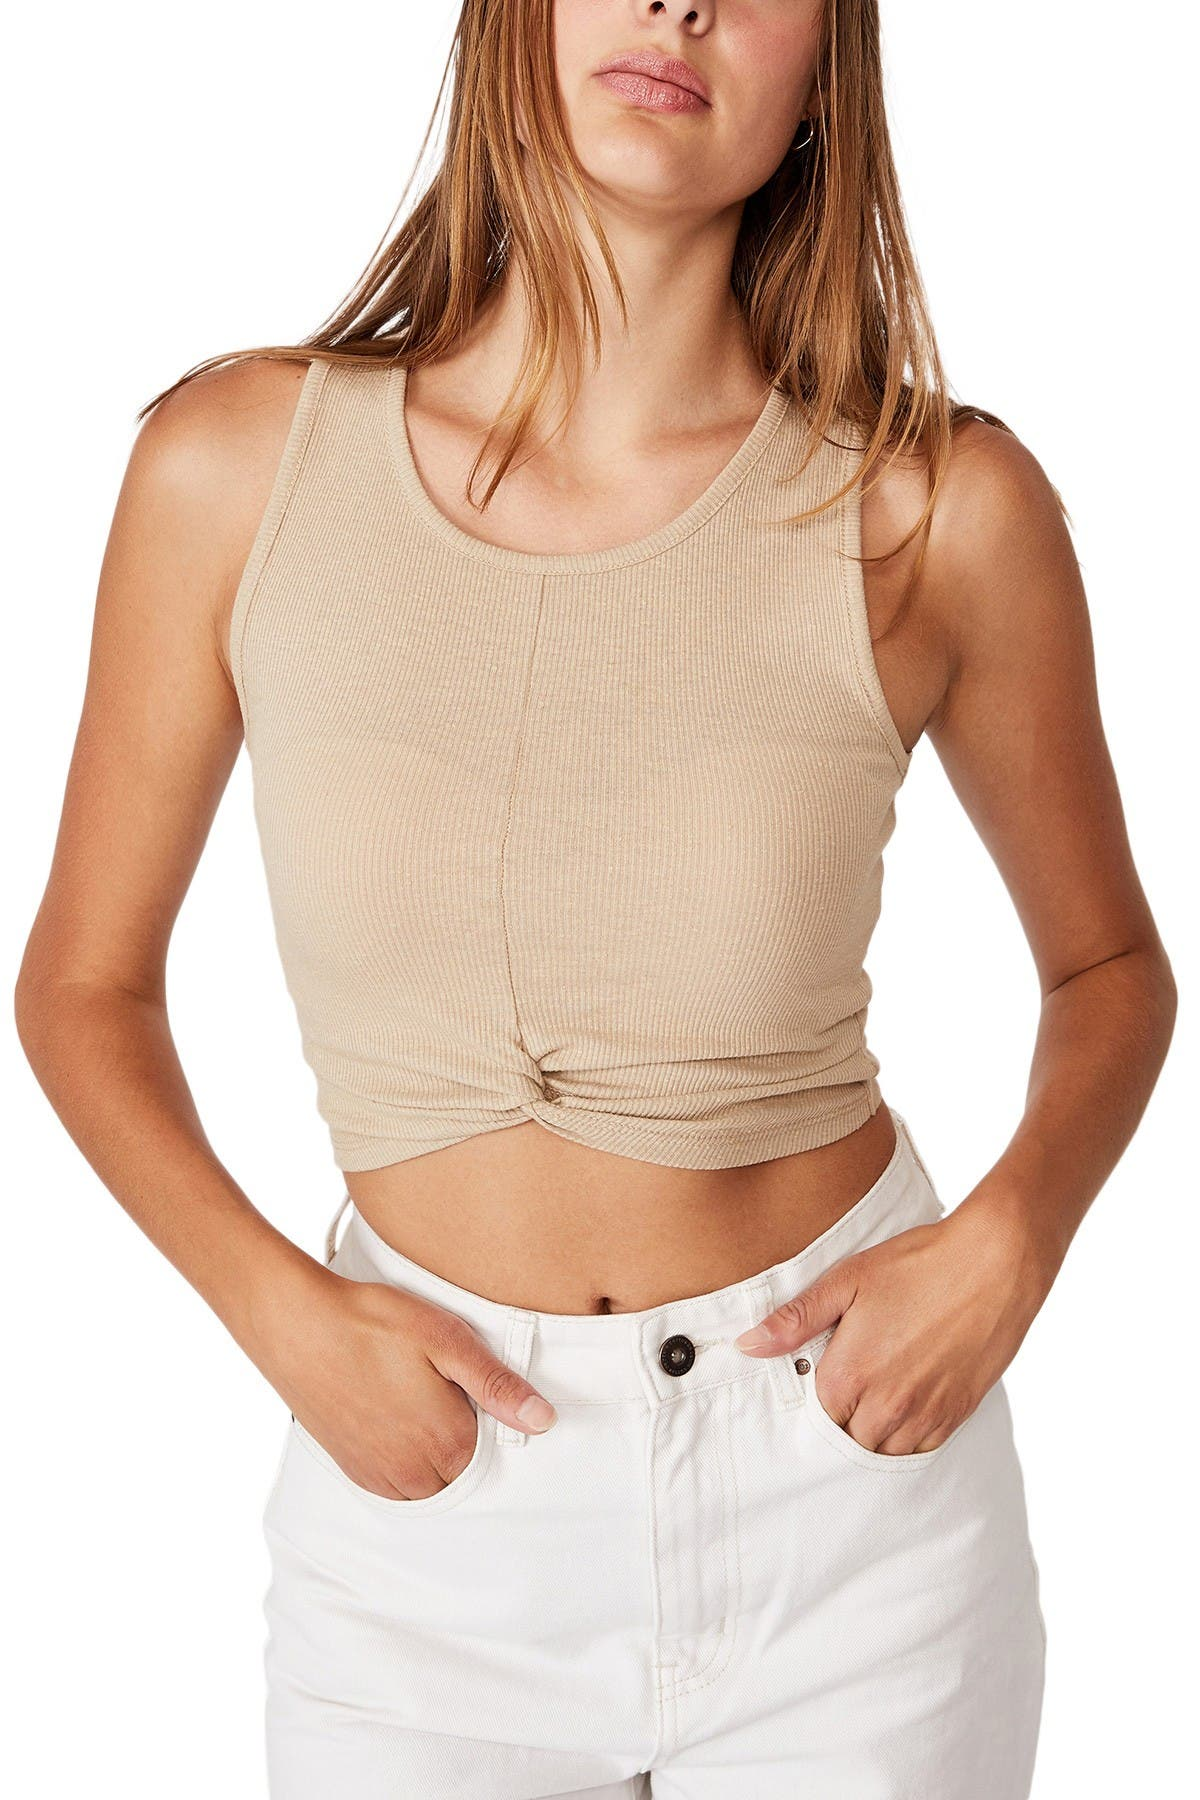 Cotton On TILLY TWIST FRONT TANK TOP